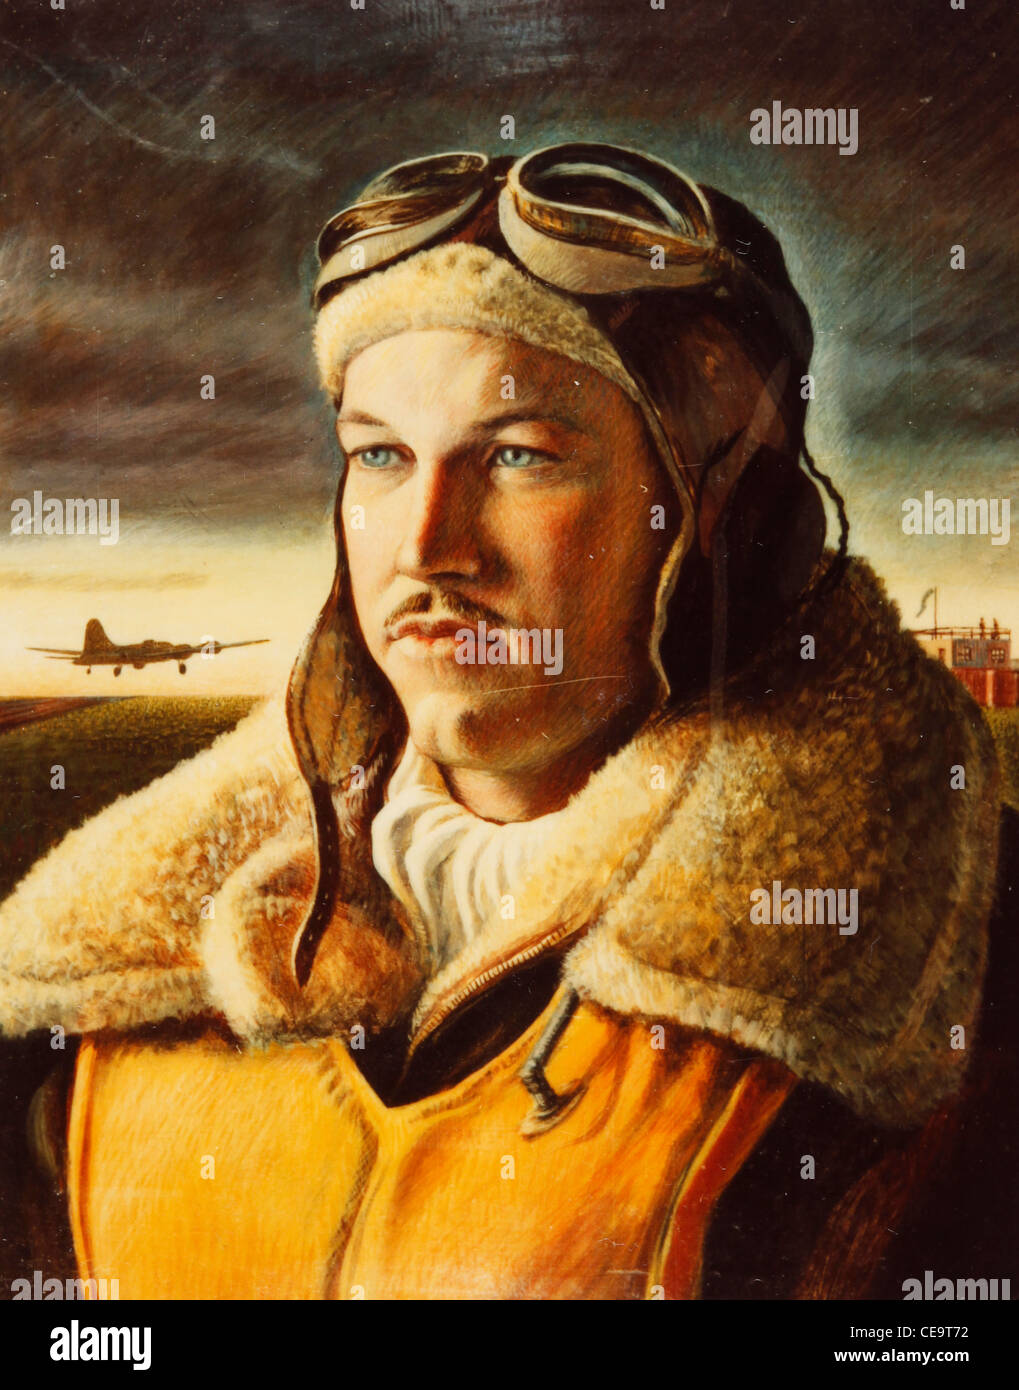 Portrait of US Army Airforce navigator in England during 1942 painting WWII - Stock Image